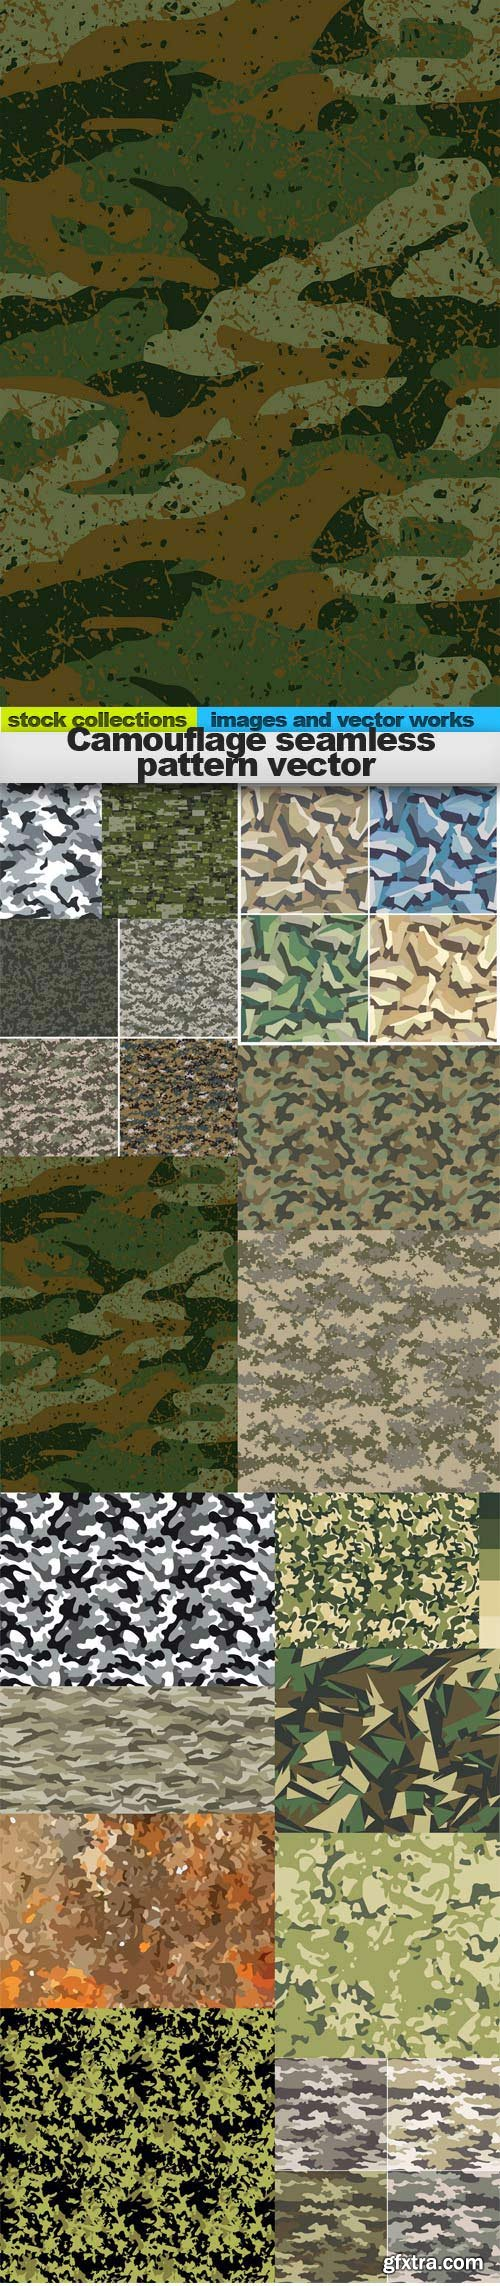 Camouflage seamless pattern vector, 15 x EPS